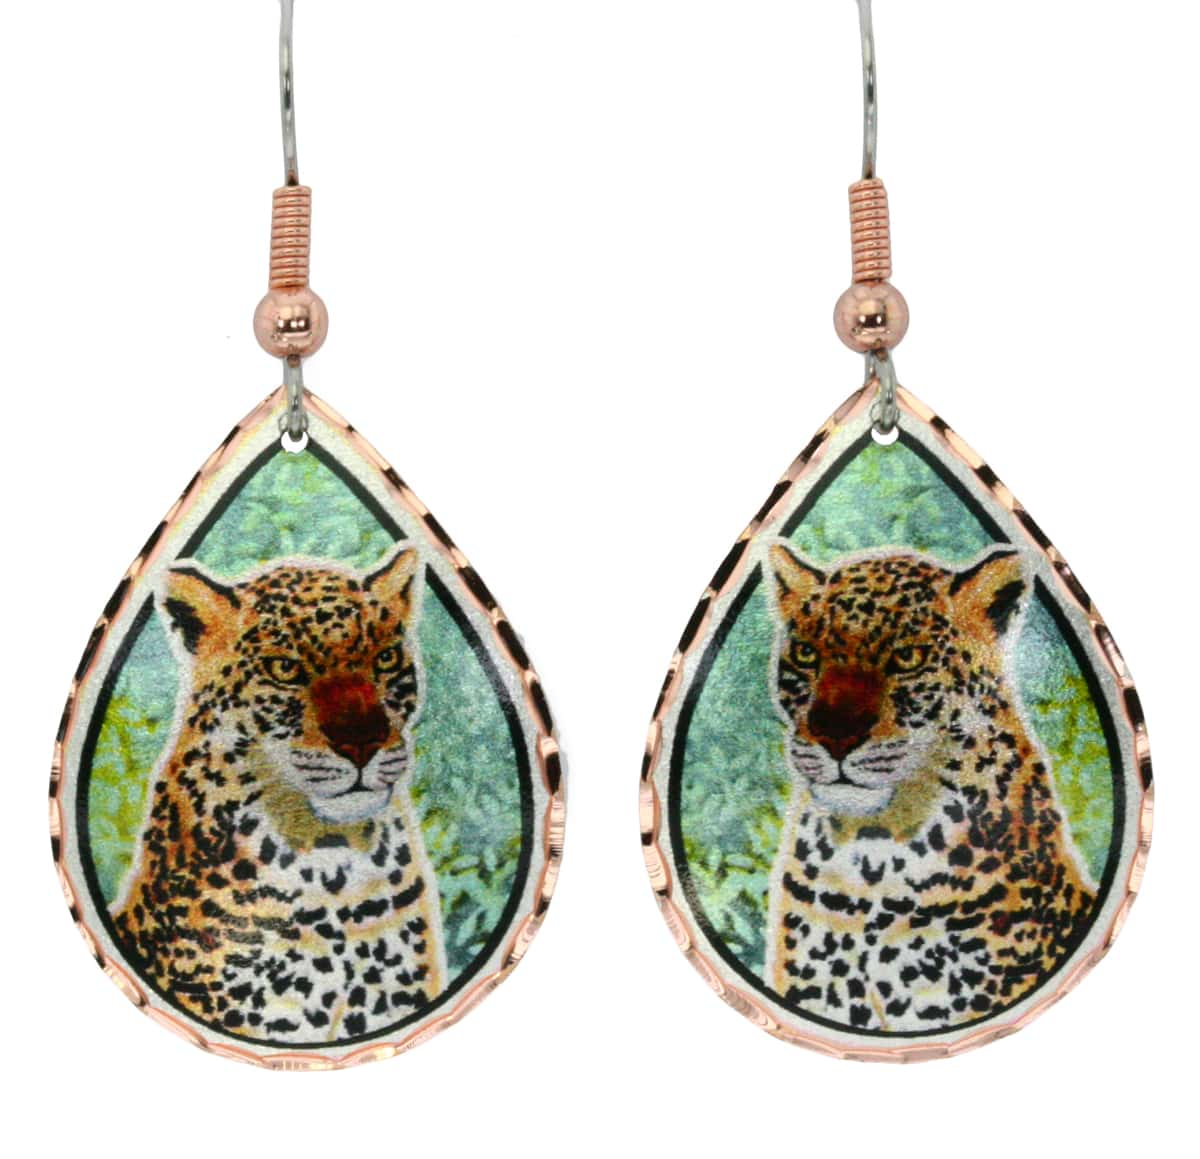 Cheetah earrings handmade in teardrop copper with vibrant colors